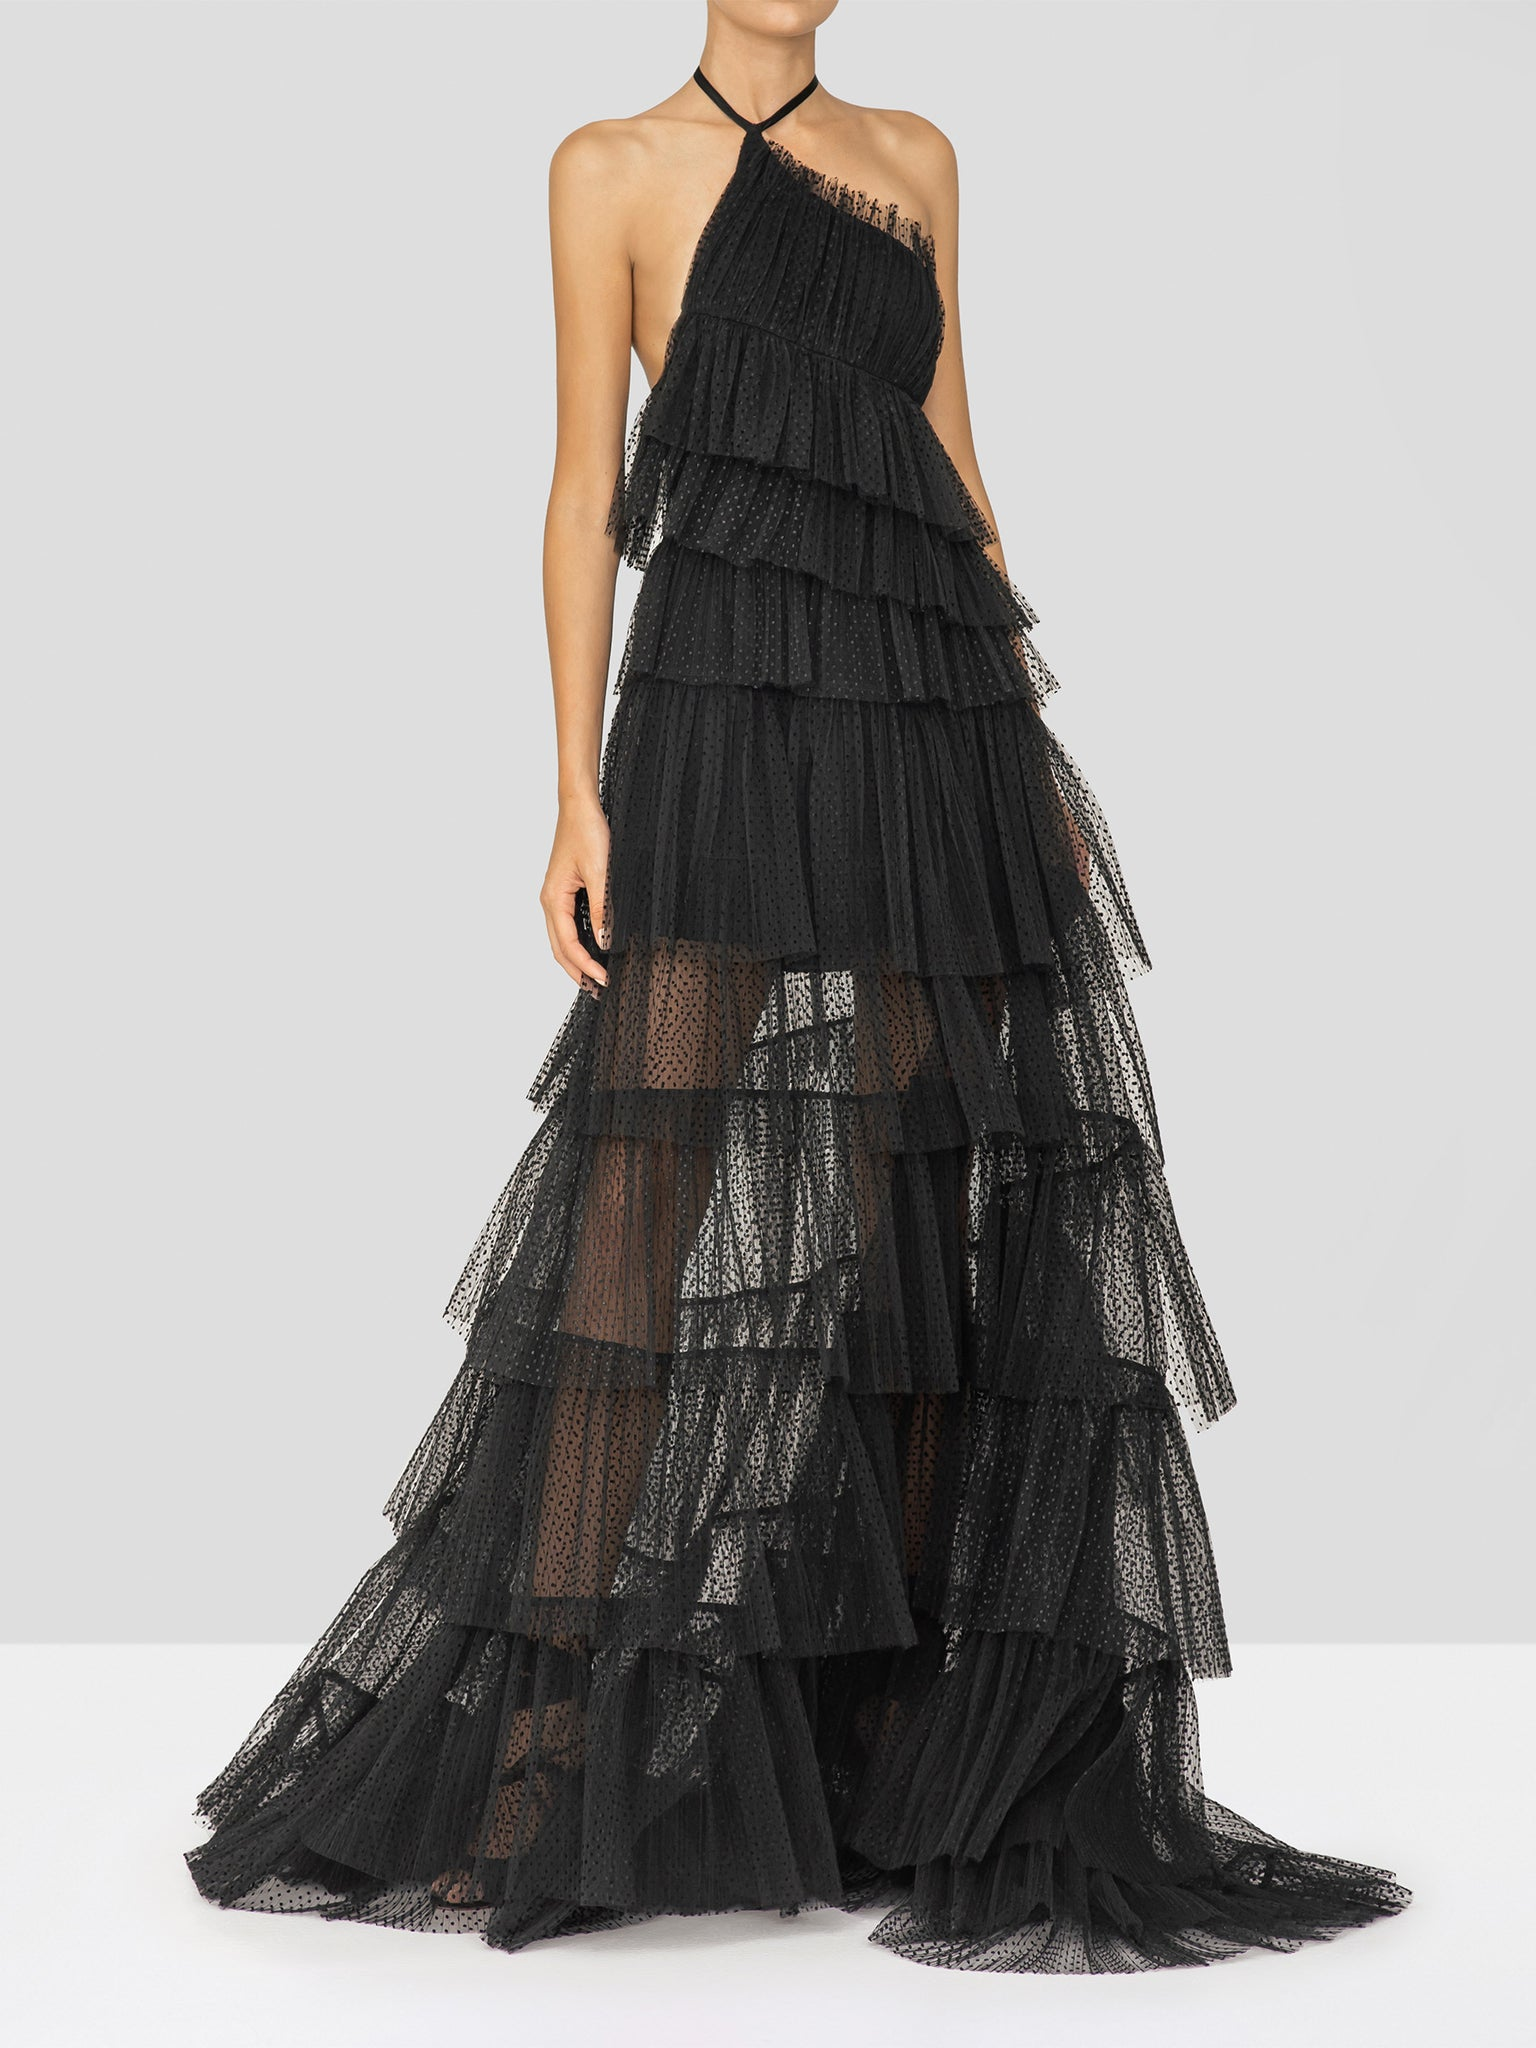 Alexis Justinia Dress in Black from the Holiday 2019 Ready To Wear Collection